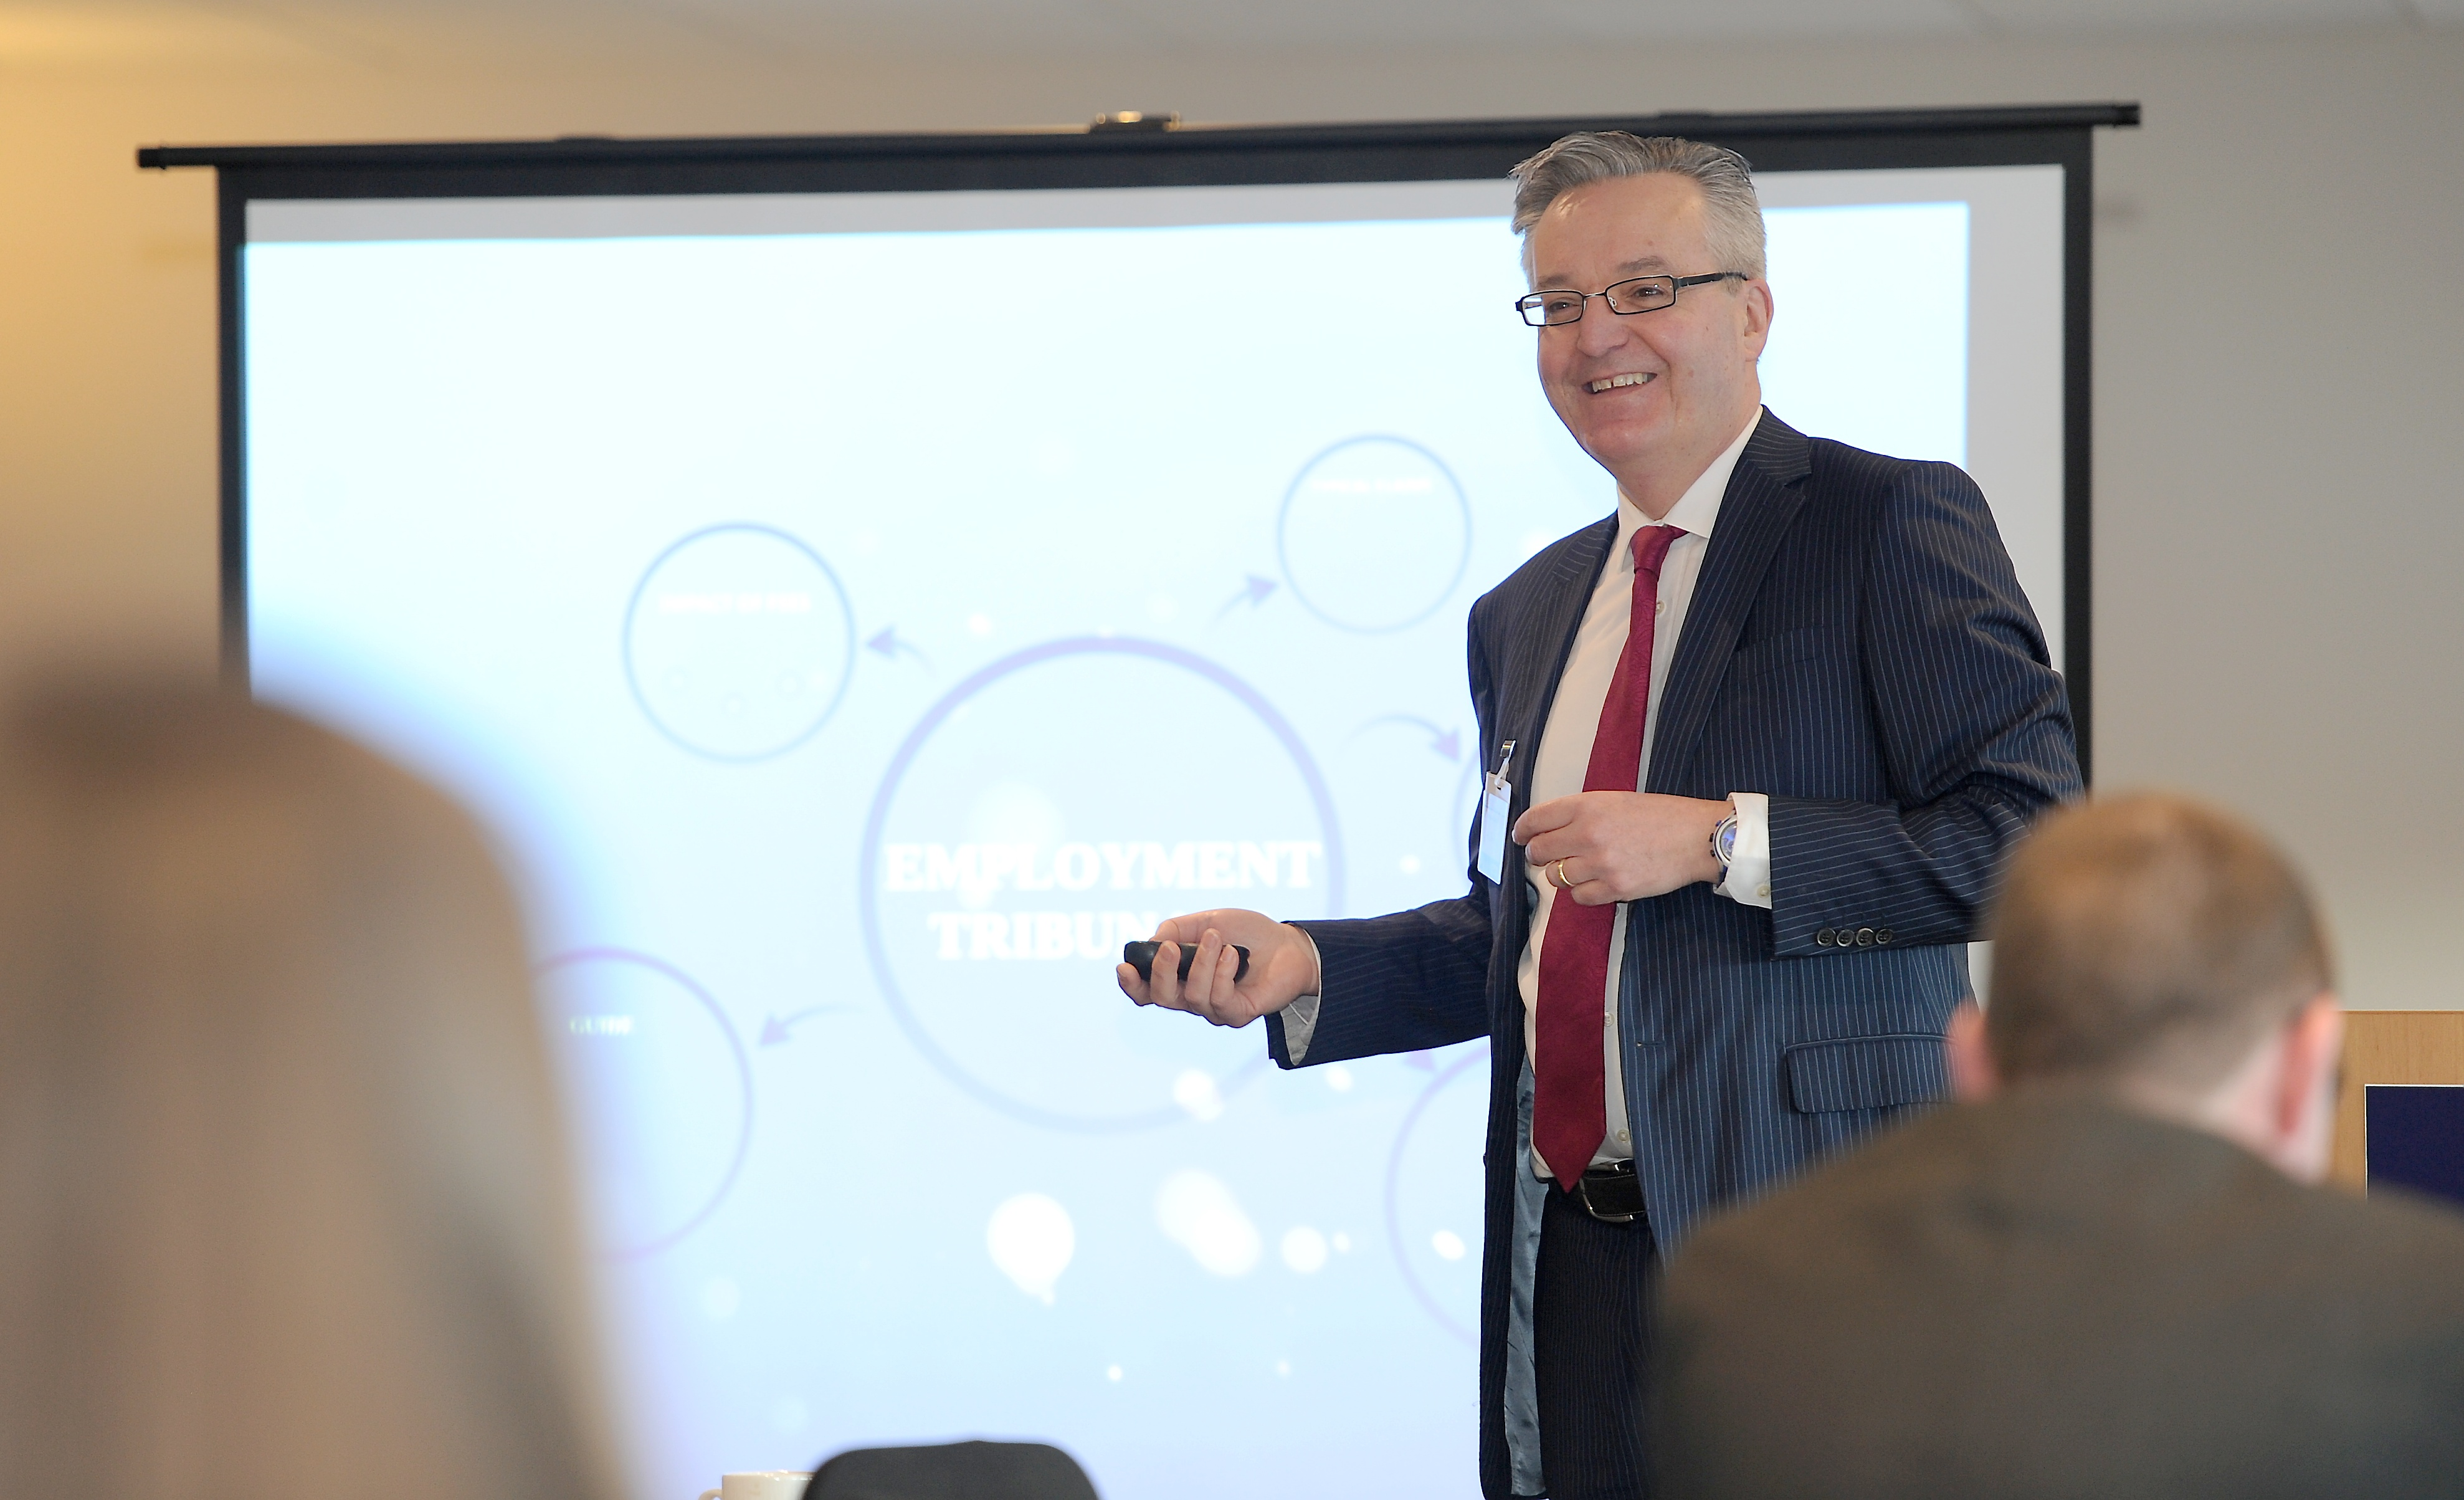 Picture by SANDY McCOOK    30th January '19 Press & Journal Business Breakfast guest speaker Kirk Tudhope speaks at the event held yesterday morning (Wed) in Vistoria Park, Dingwall.